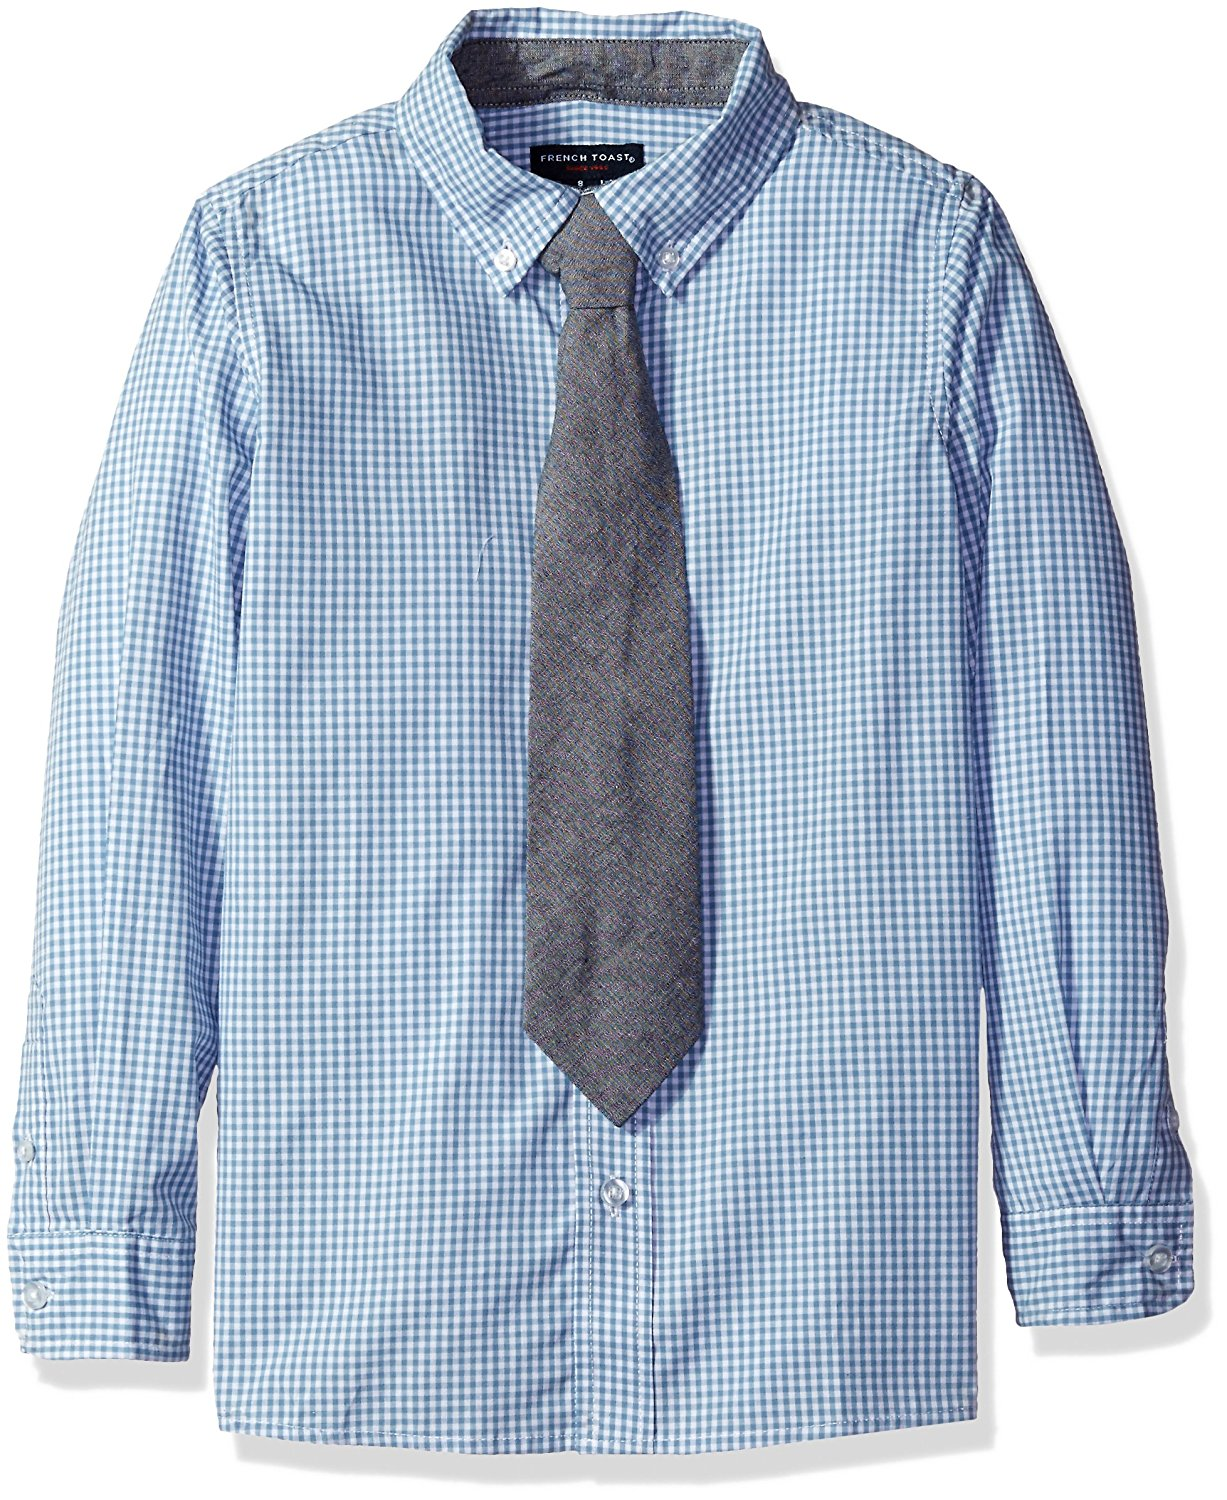 7abe840b2fb Get Quotations · French Toast Boys  Little Long Sleeve Dress Shirt with Tie